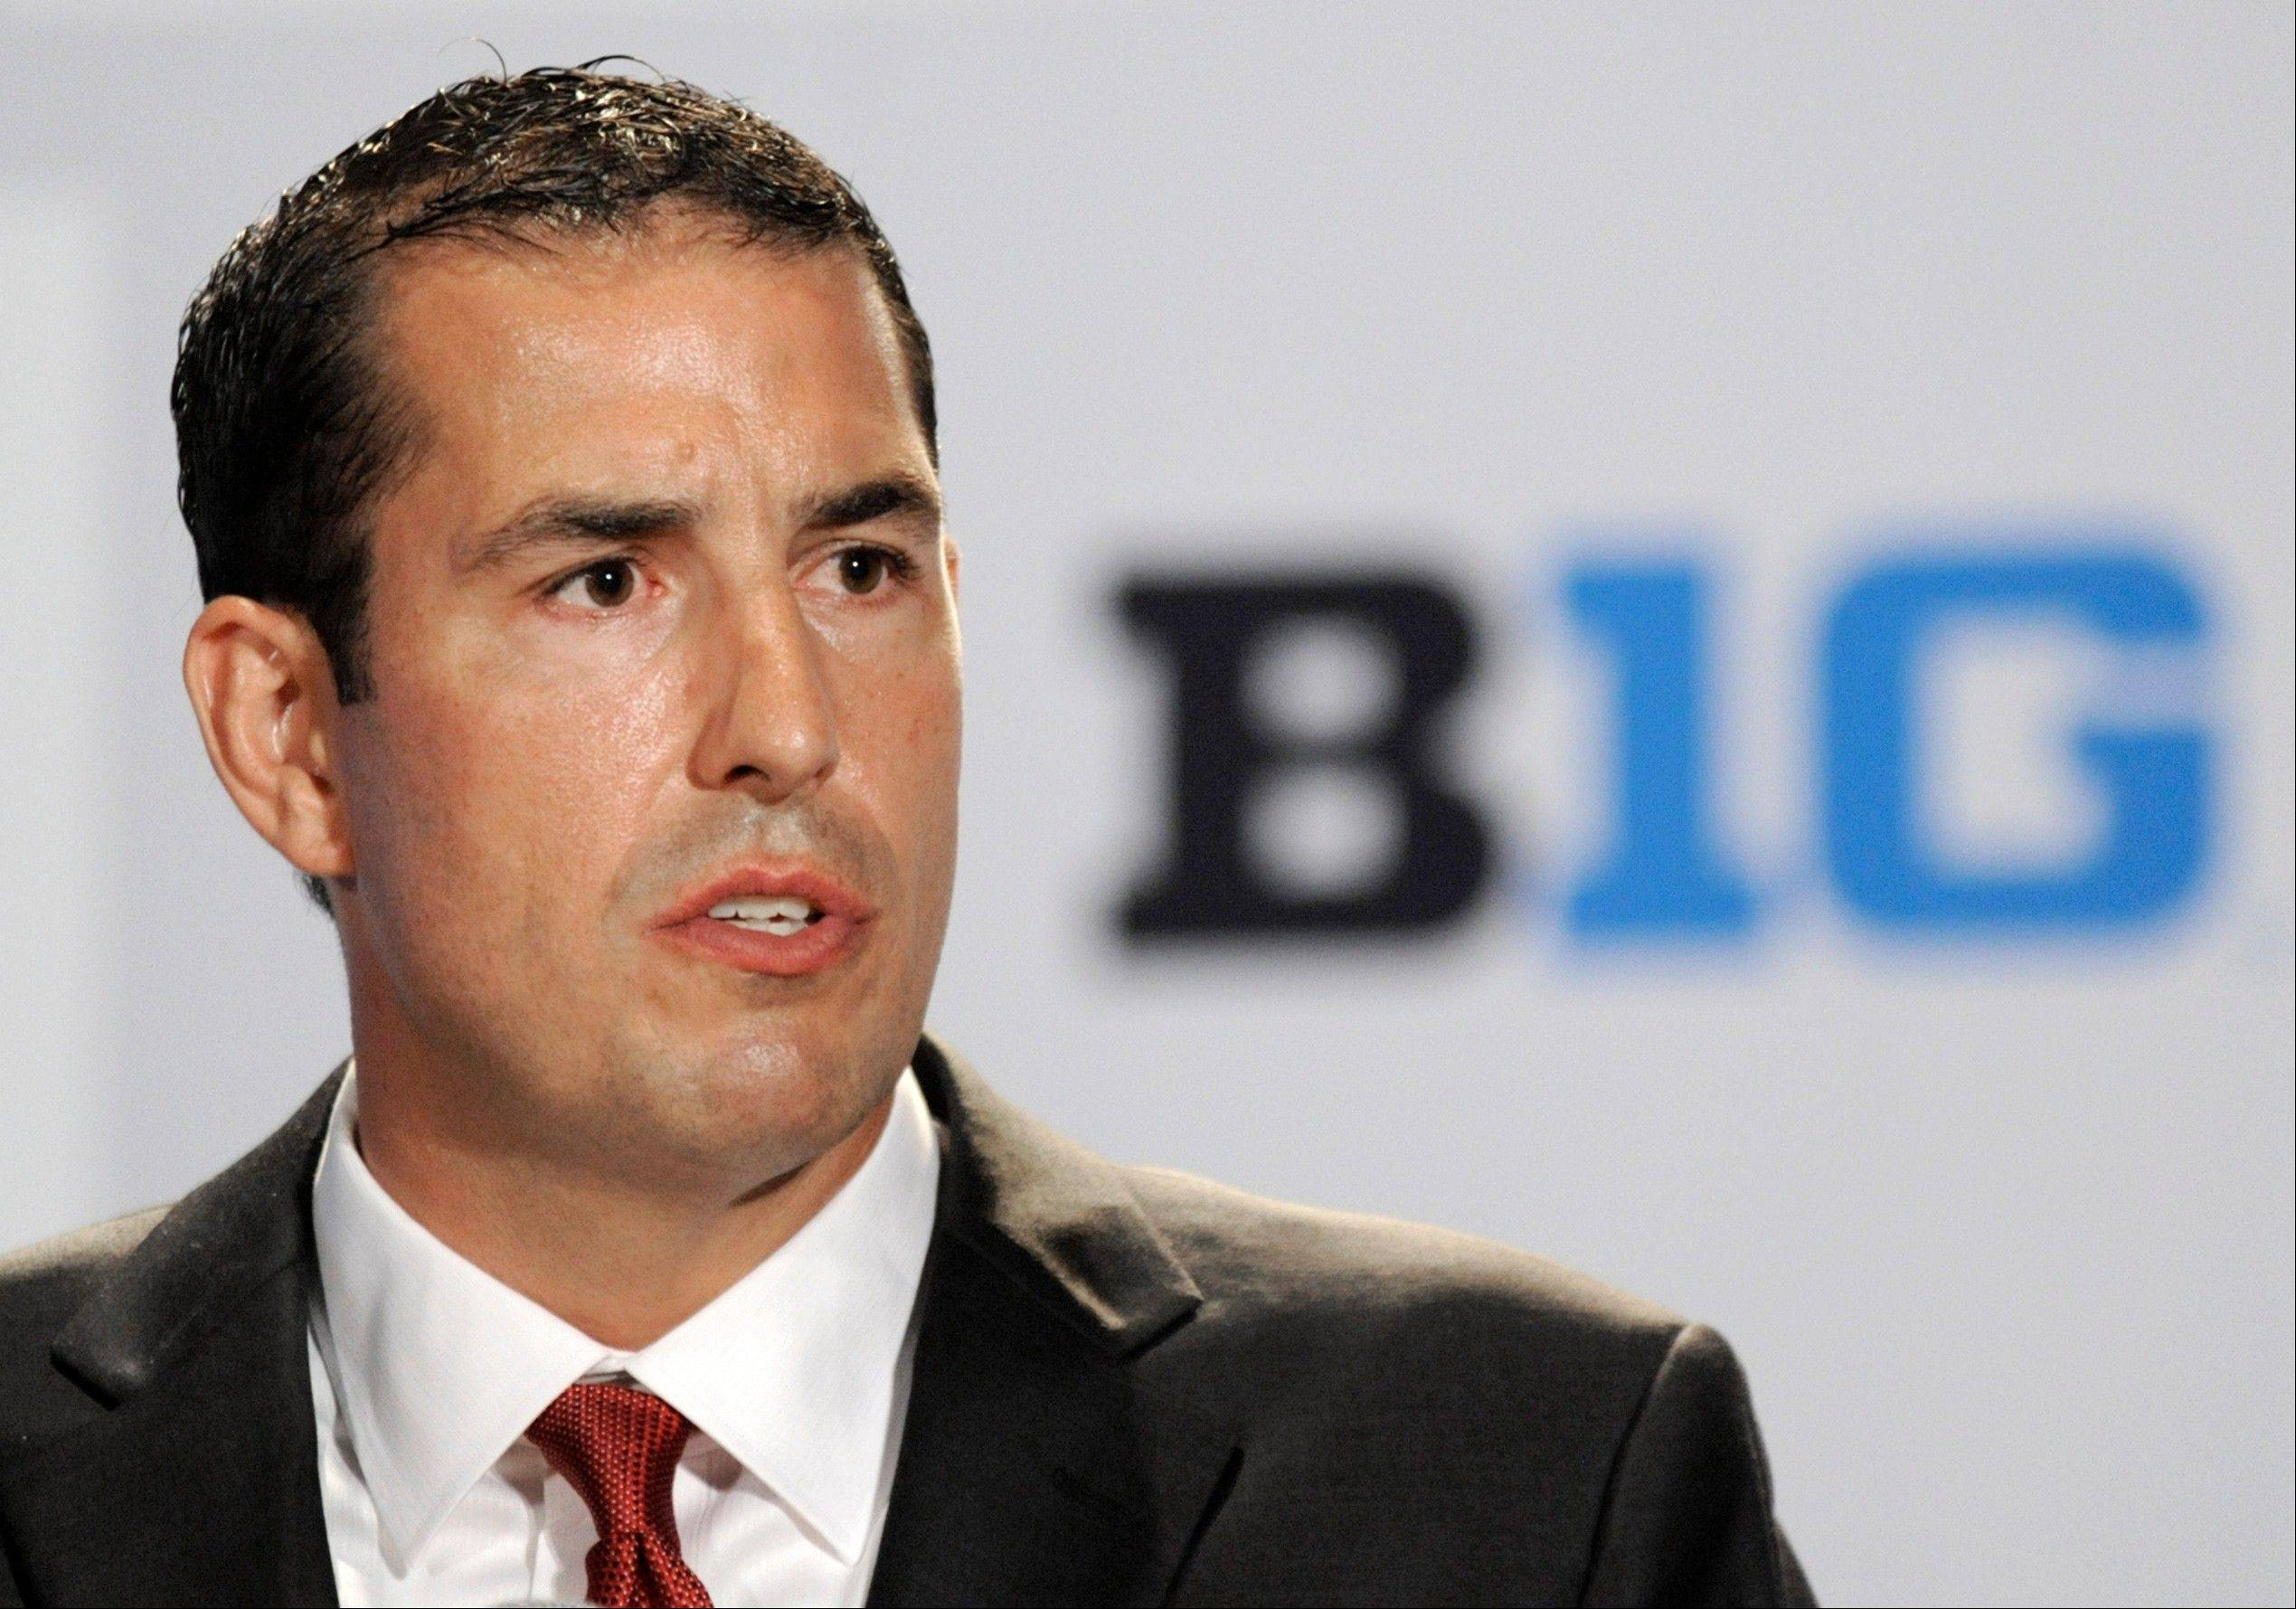 Ohio State head coach Luke Fickell talks to reporters during Big Ten football media day, Thursday, July 28, 2011, in Chicago. (AP Photo/Paul Beaty)